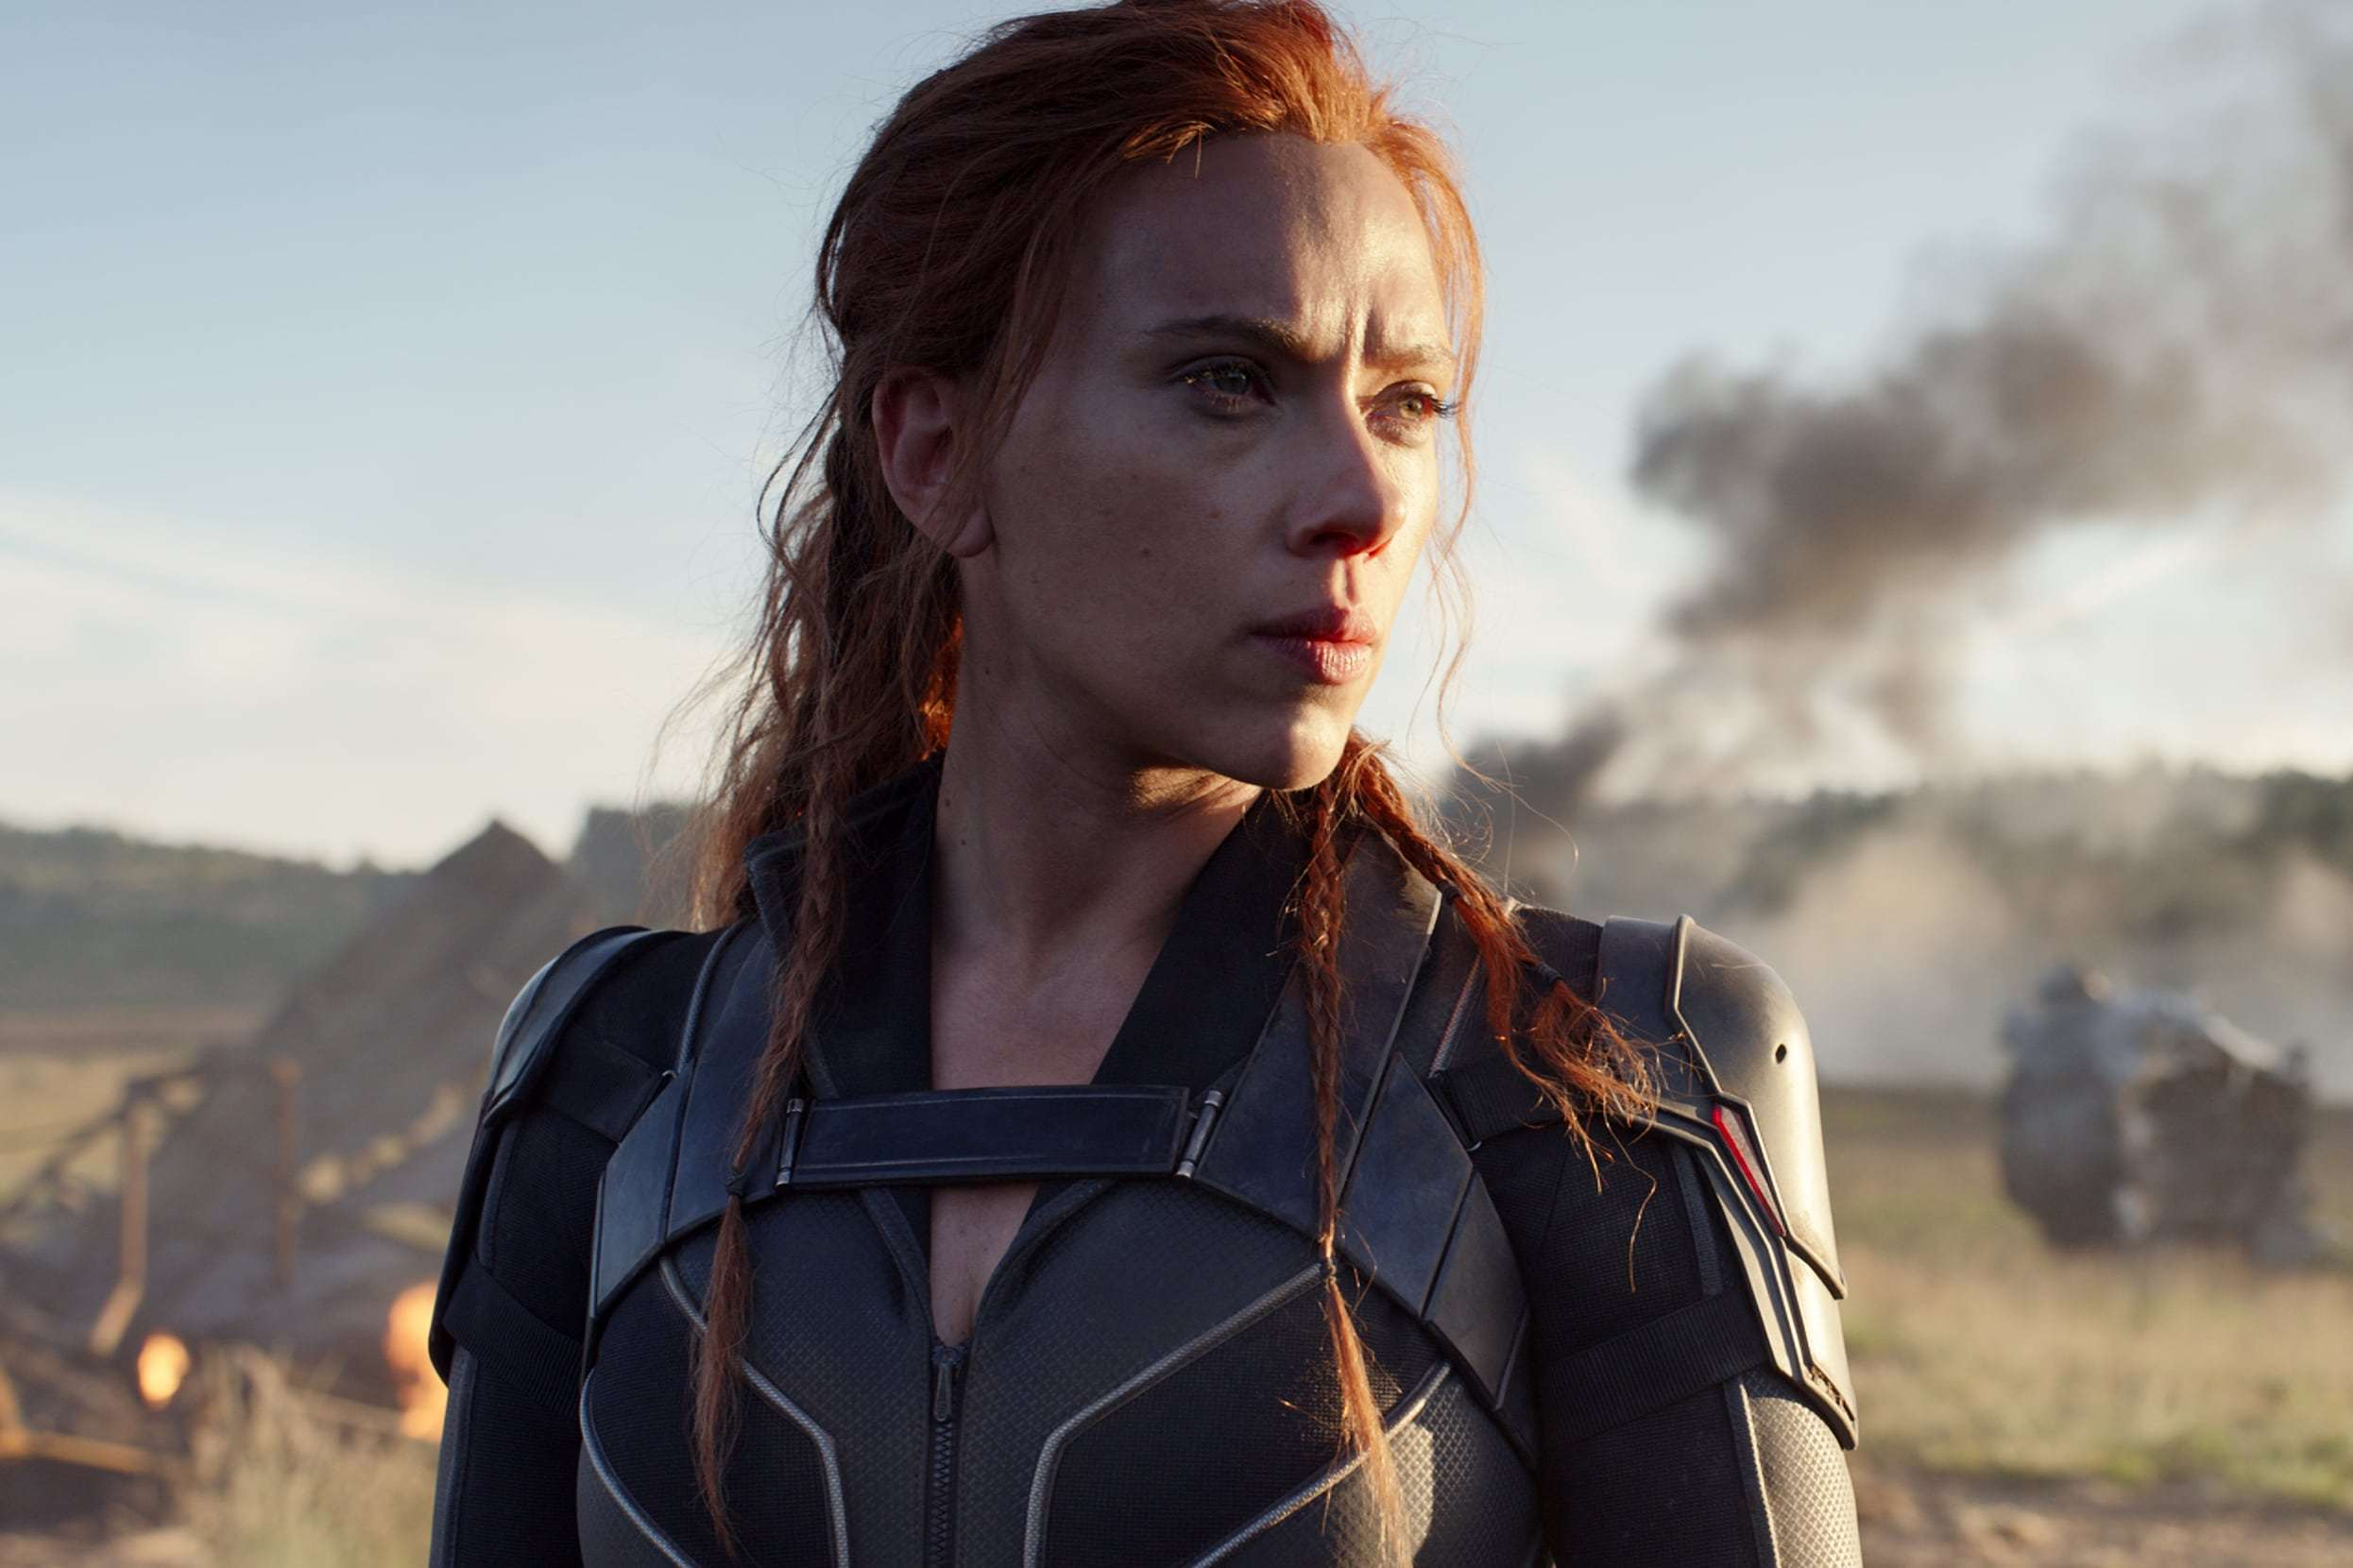 Cate Shortland's Black Widow feature film has been delayed indefinitely due to current world events.